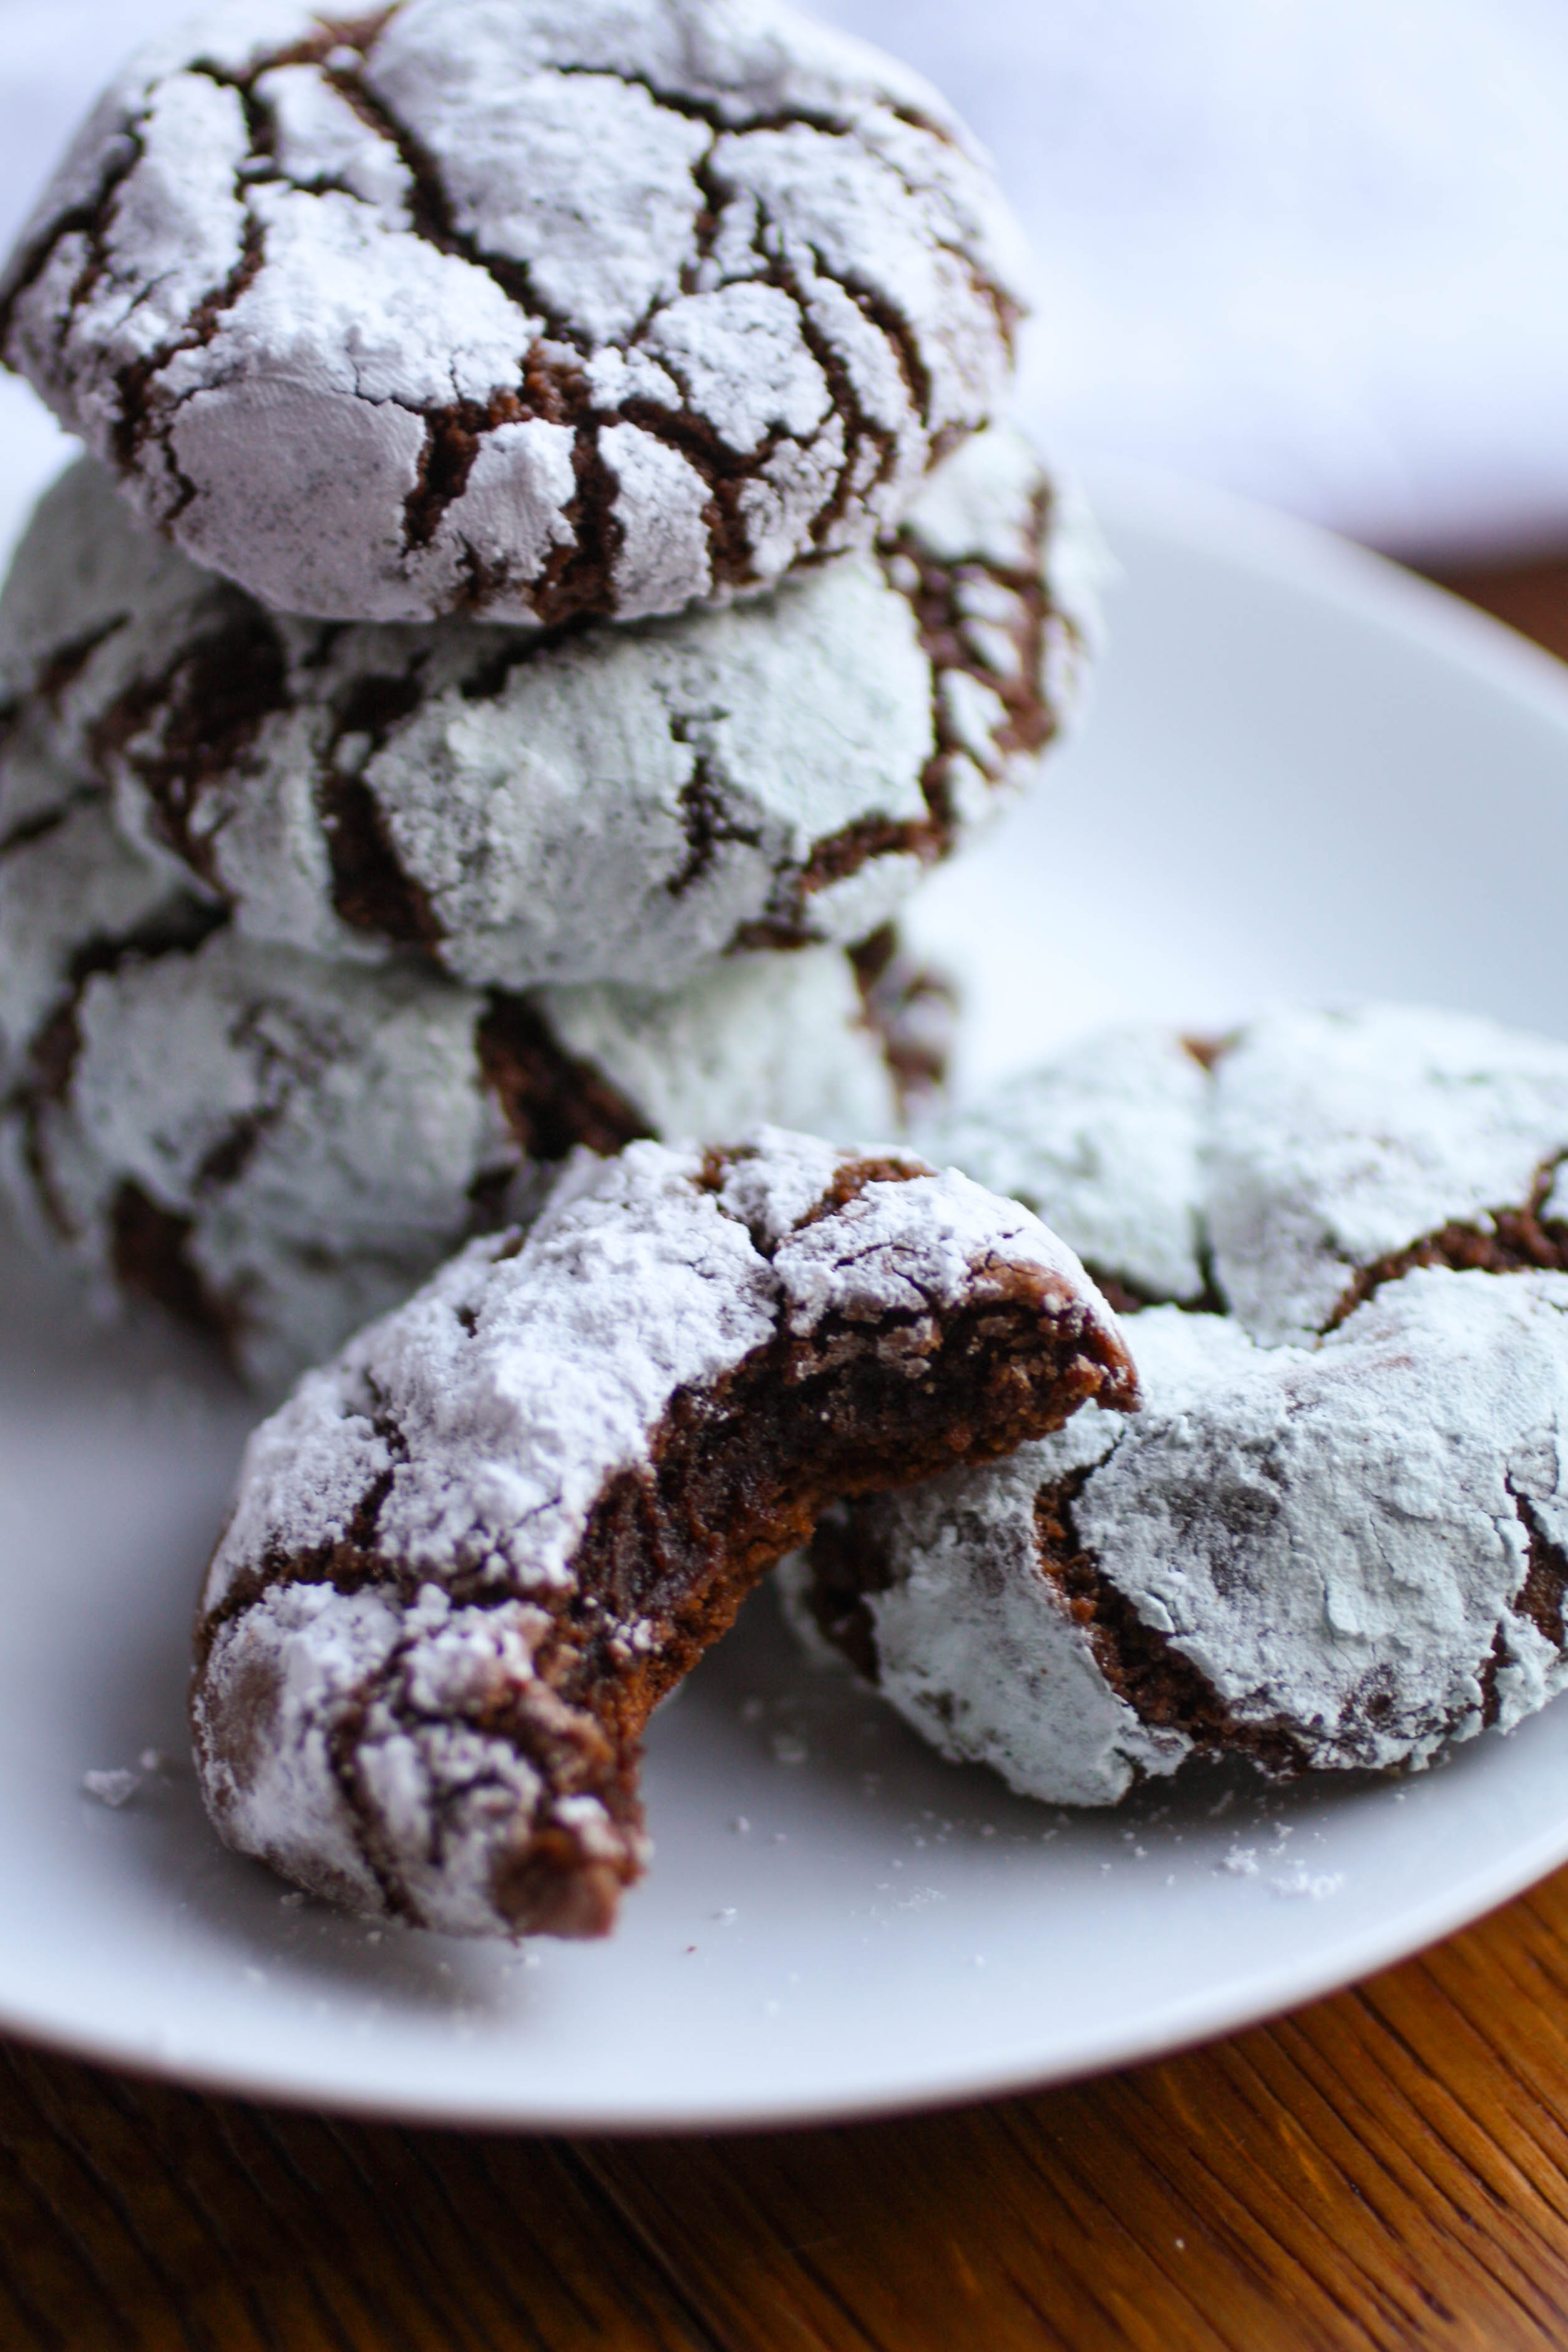 Chocolate-Chili Crinkle Cookies are fabulous cookie treats! You'll love the richness and bit of spice in these cookies!